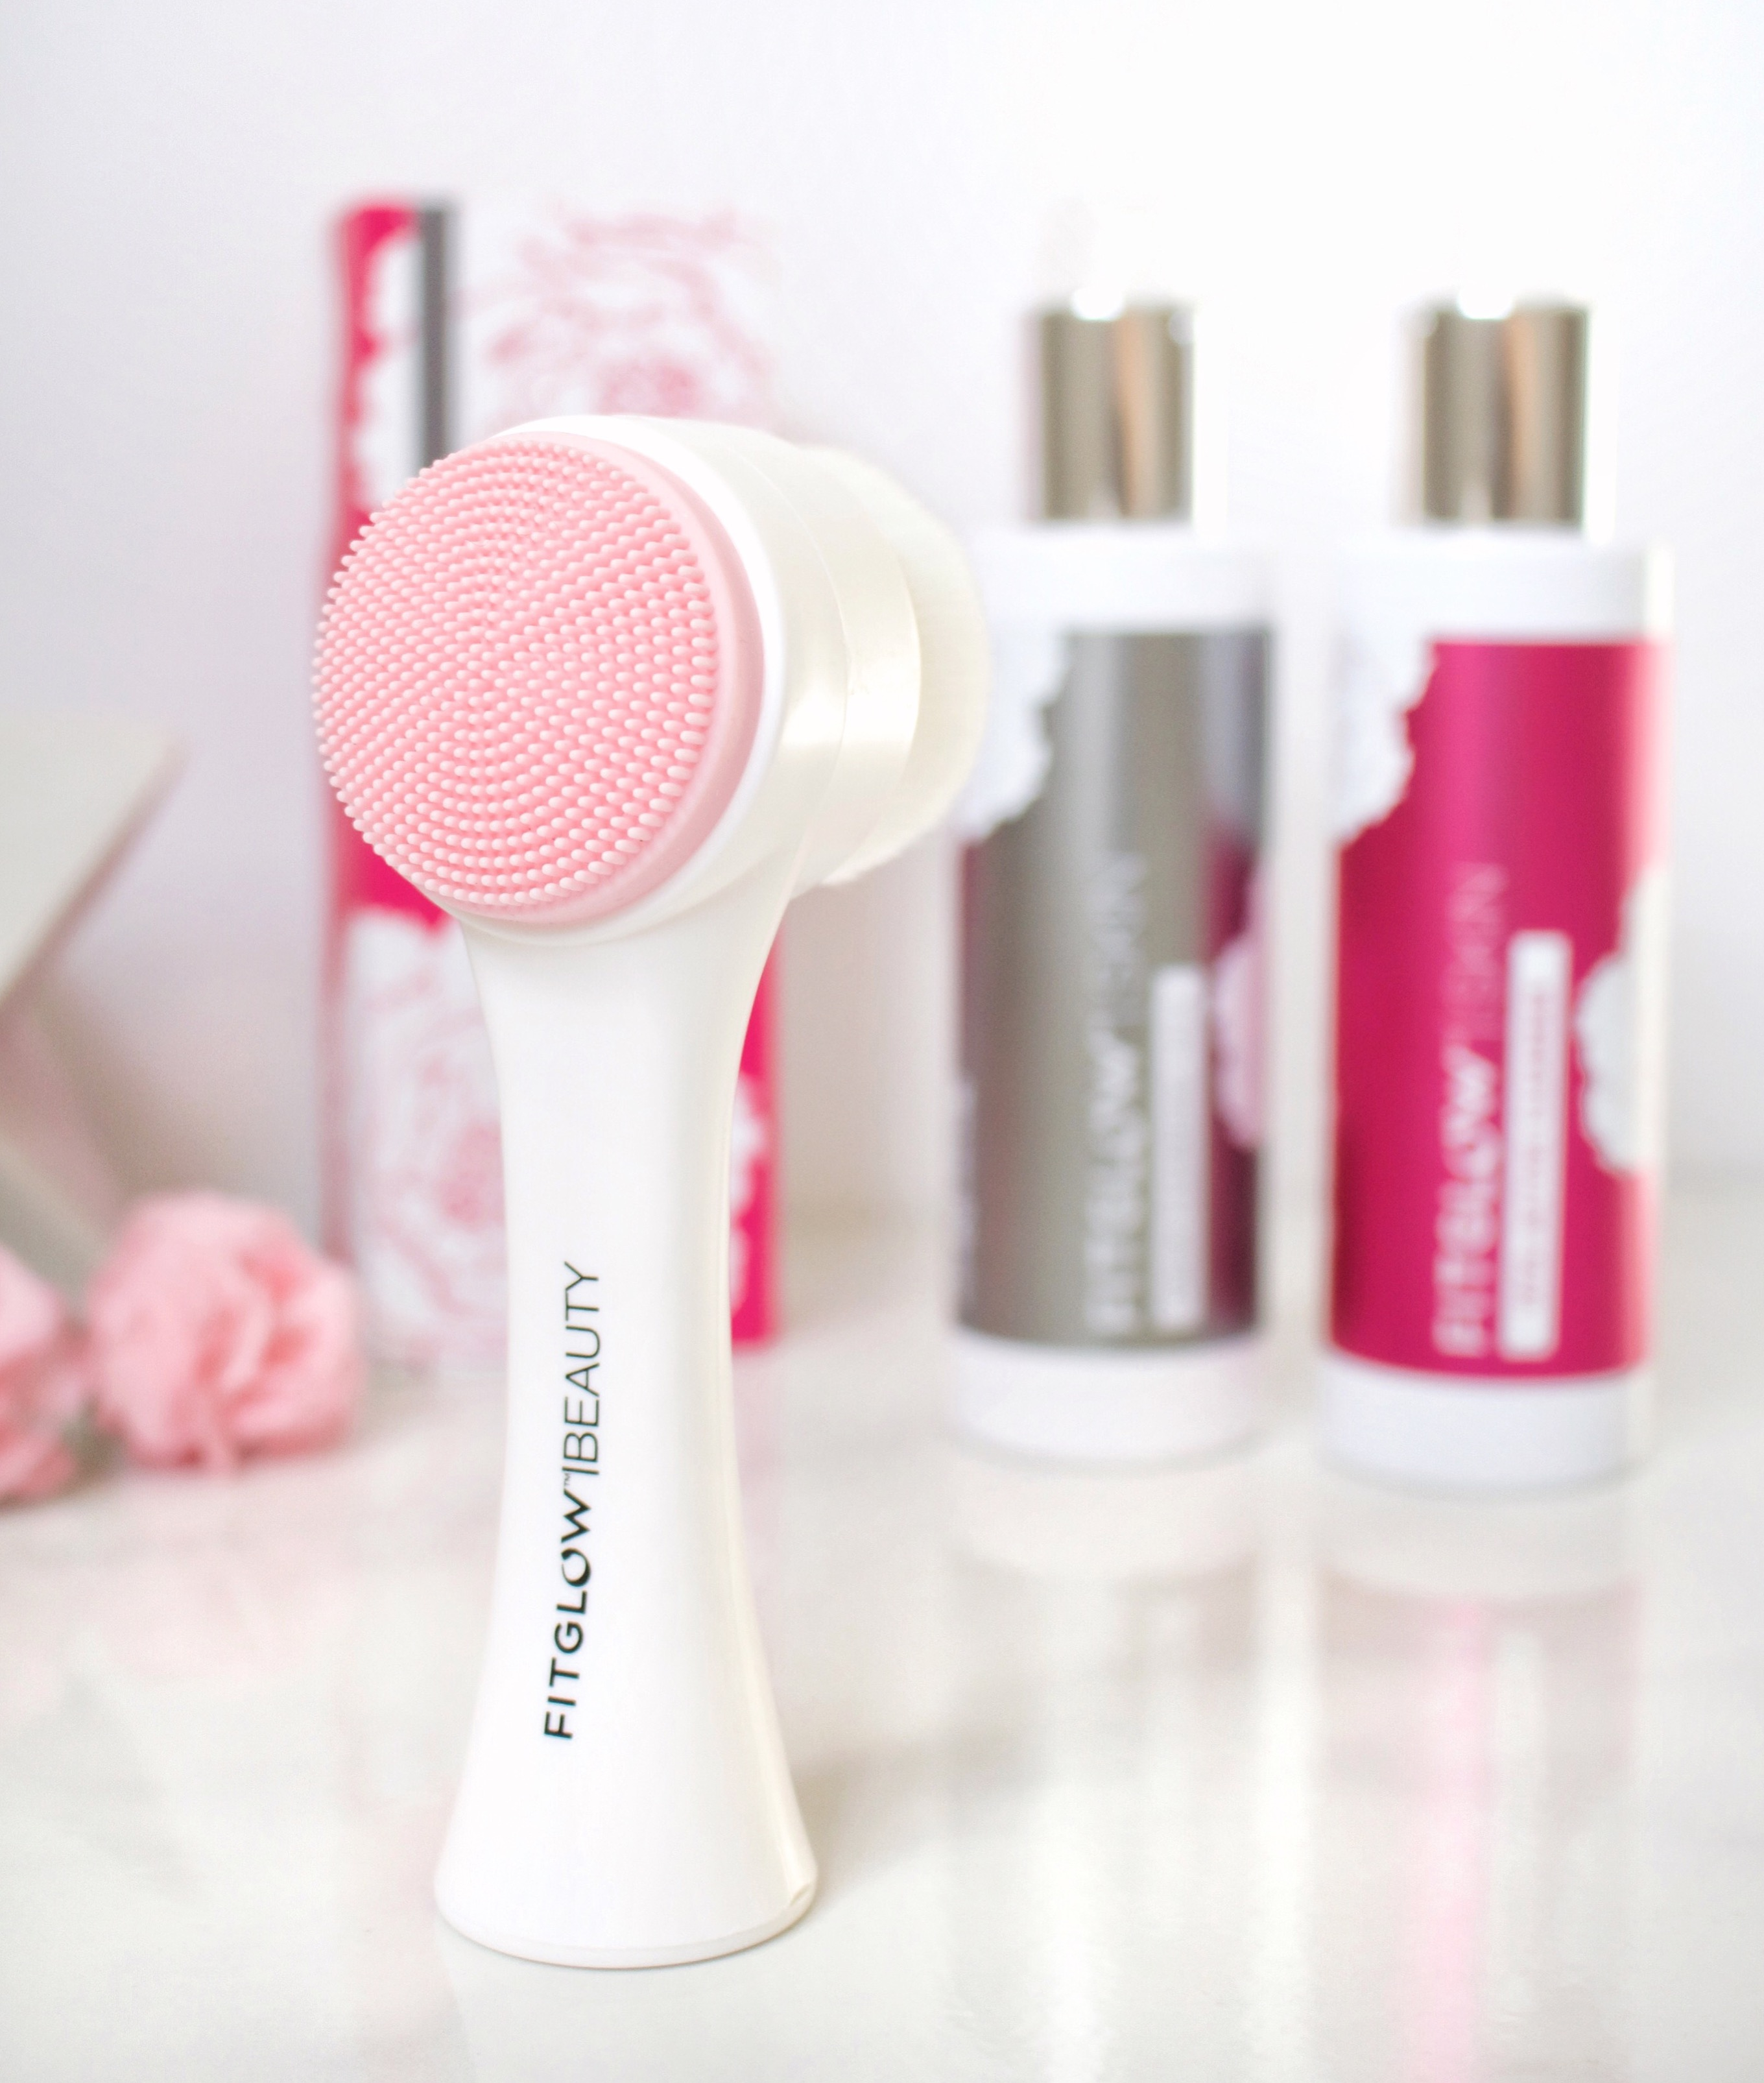 Fitglow Beauty Face Cleansing Brush Organic Bunny